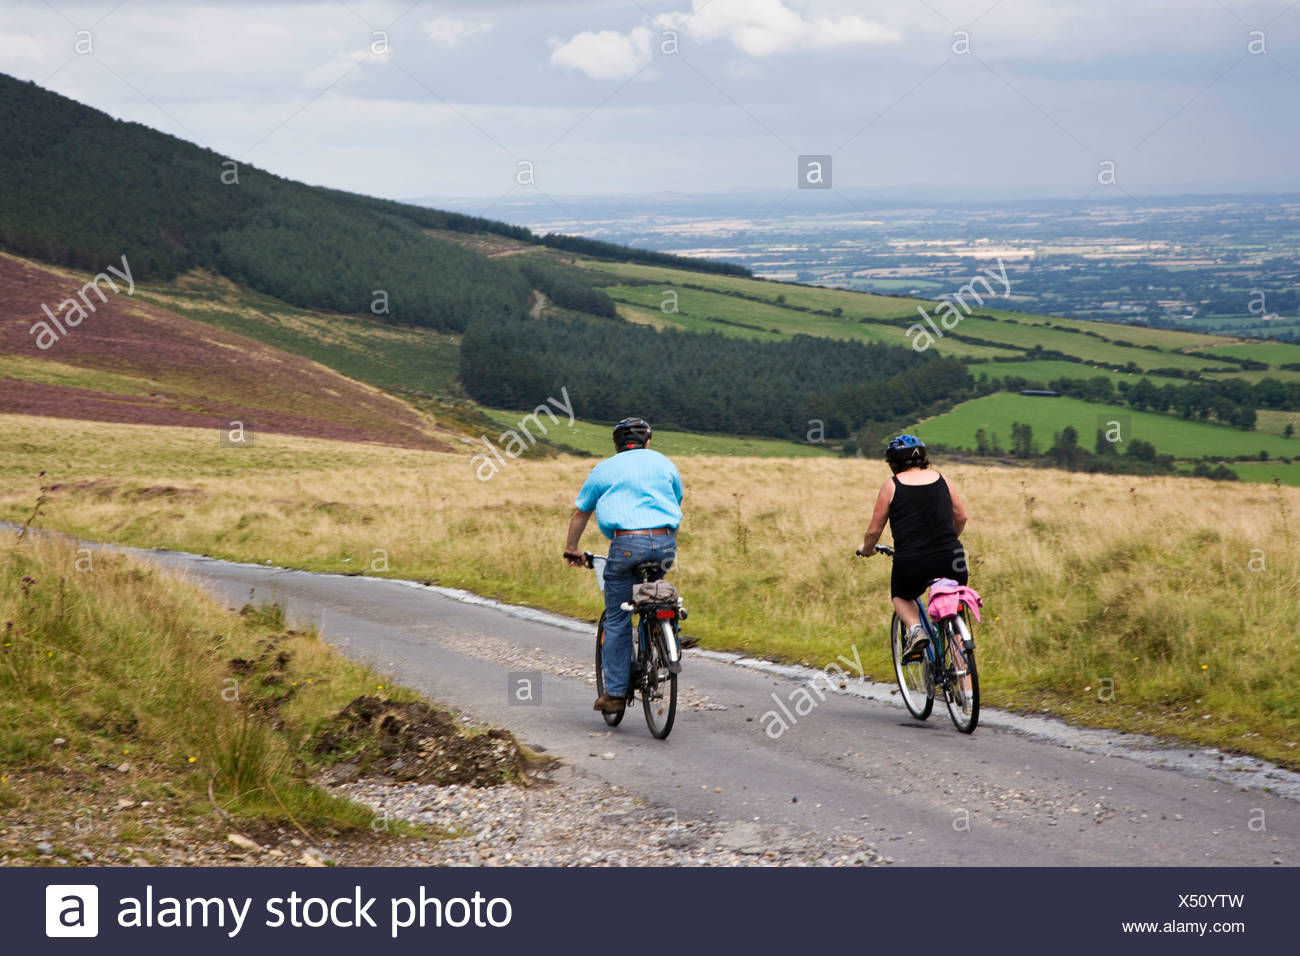 Republic of Ireland, County Carlow, Mount Leinster, people cycling on hilltop road - Stock Image